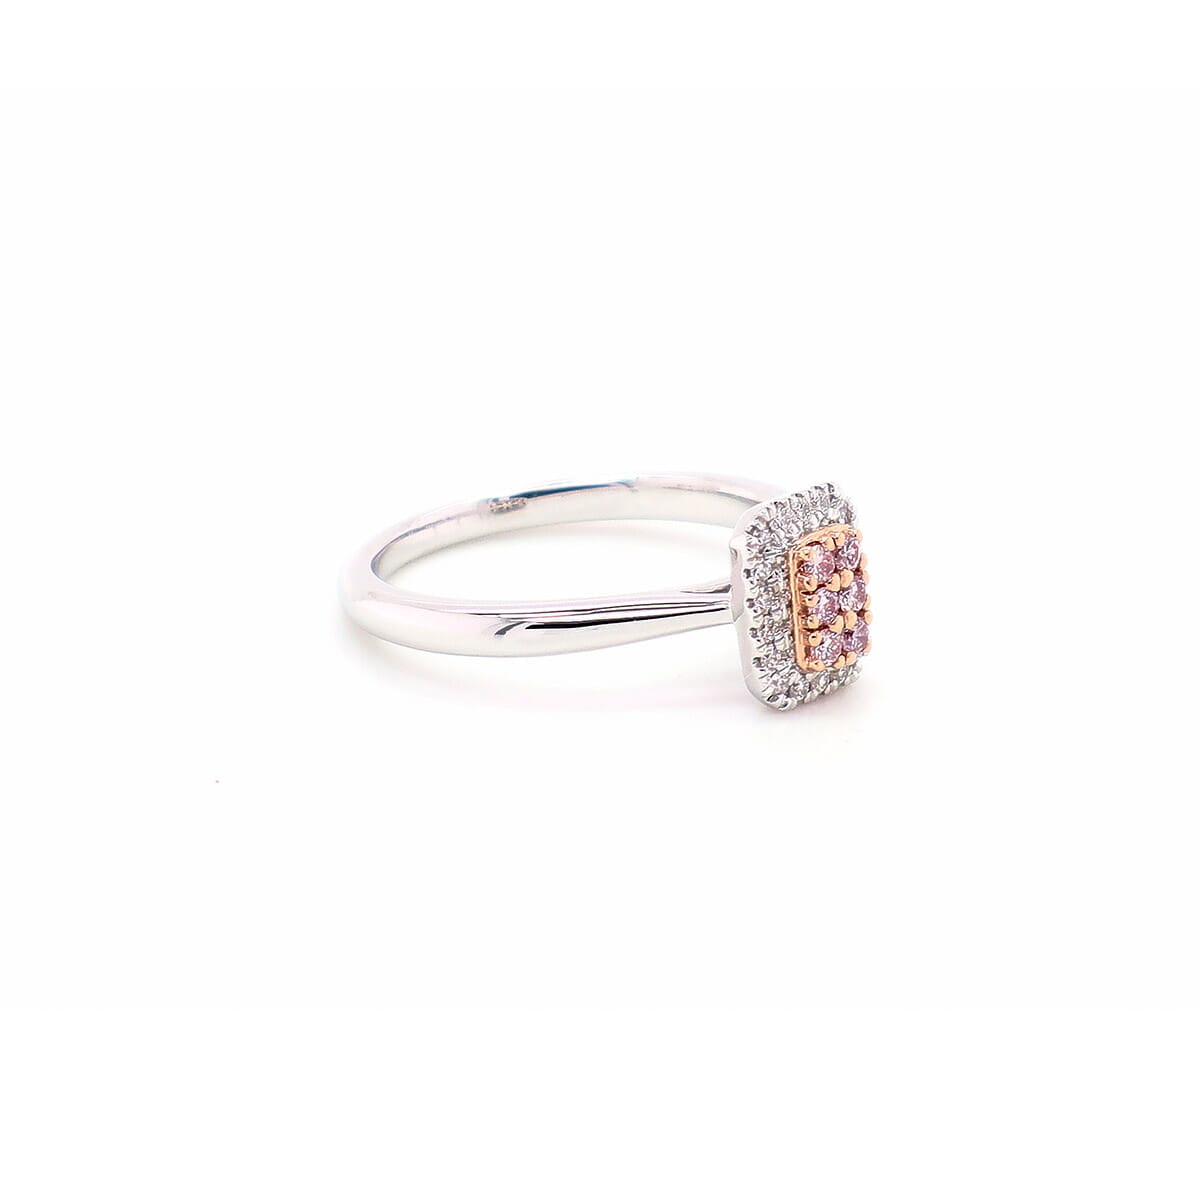 BLUSH DAWN RING